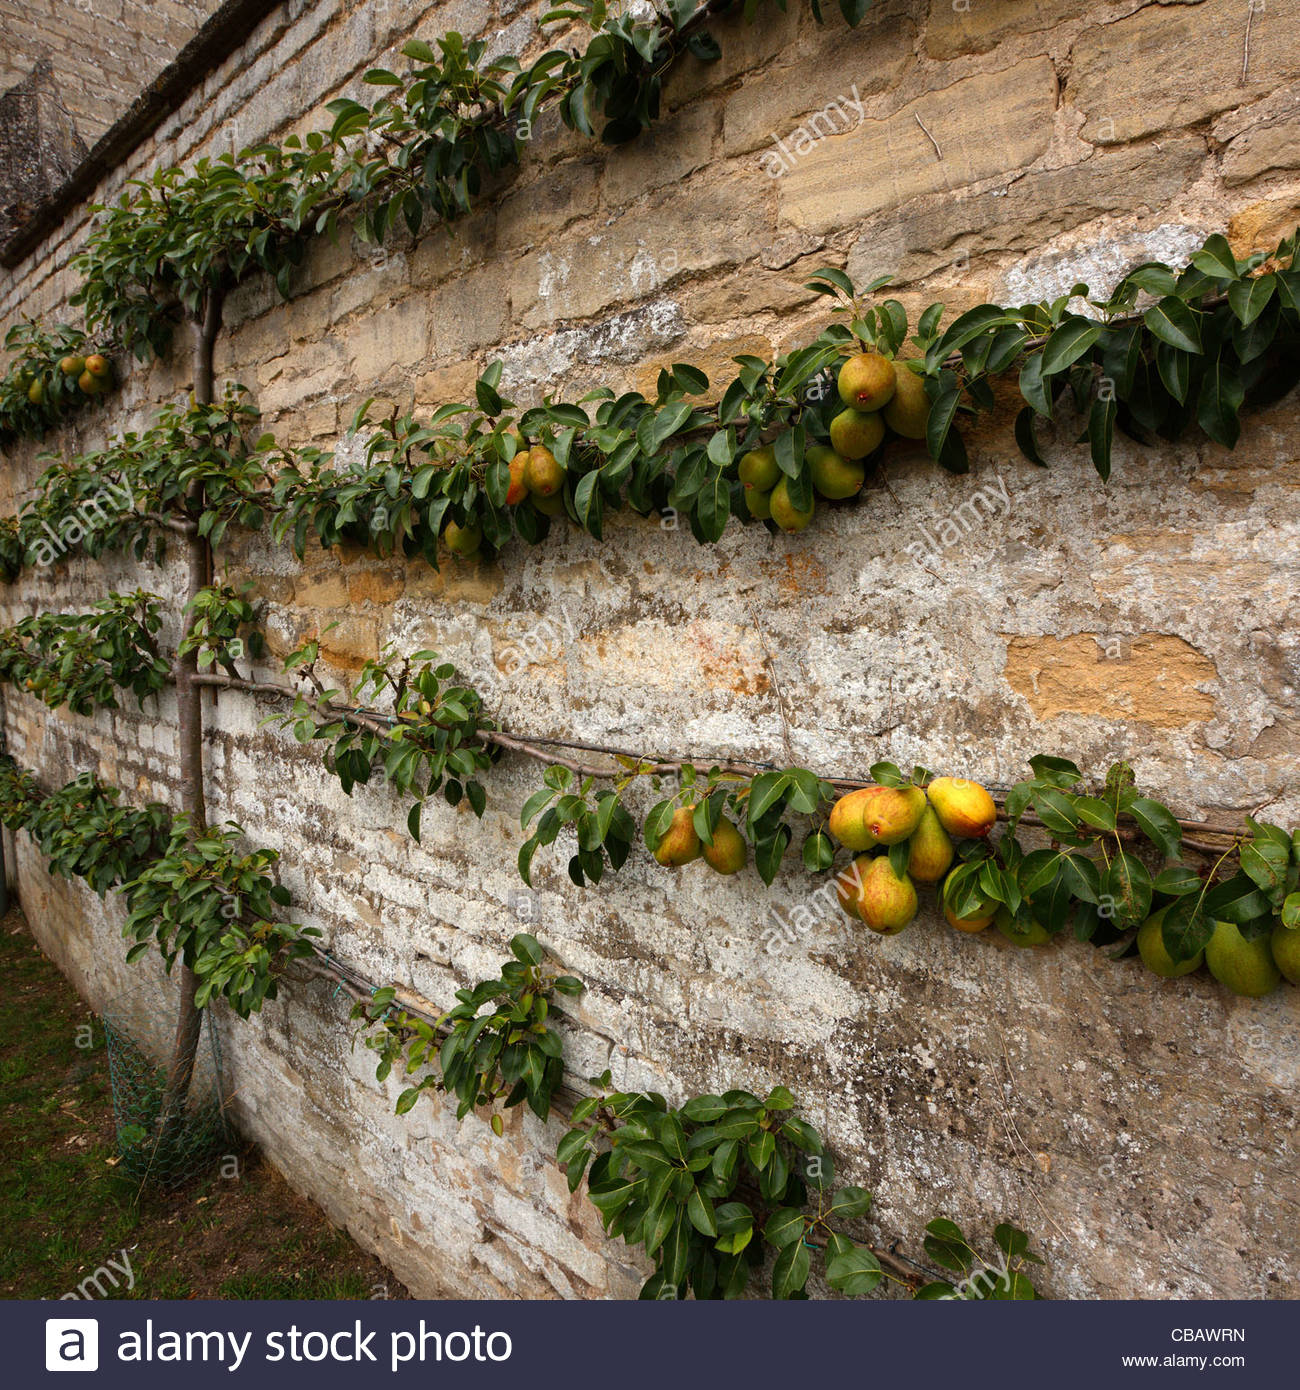 Espalier Trained Pear Tree With Fruit On Cottage Garden Wall, Easton Walled  Gardens, Easton, Grantham, Lincolnshire, England, UK